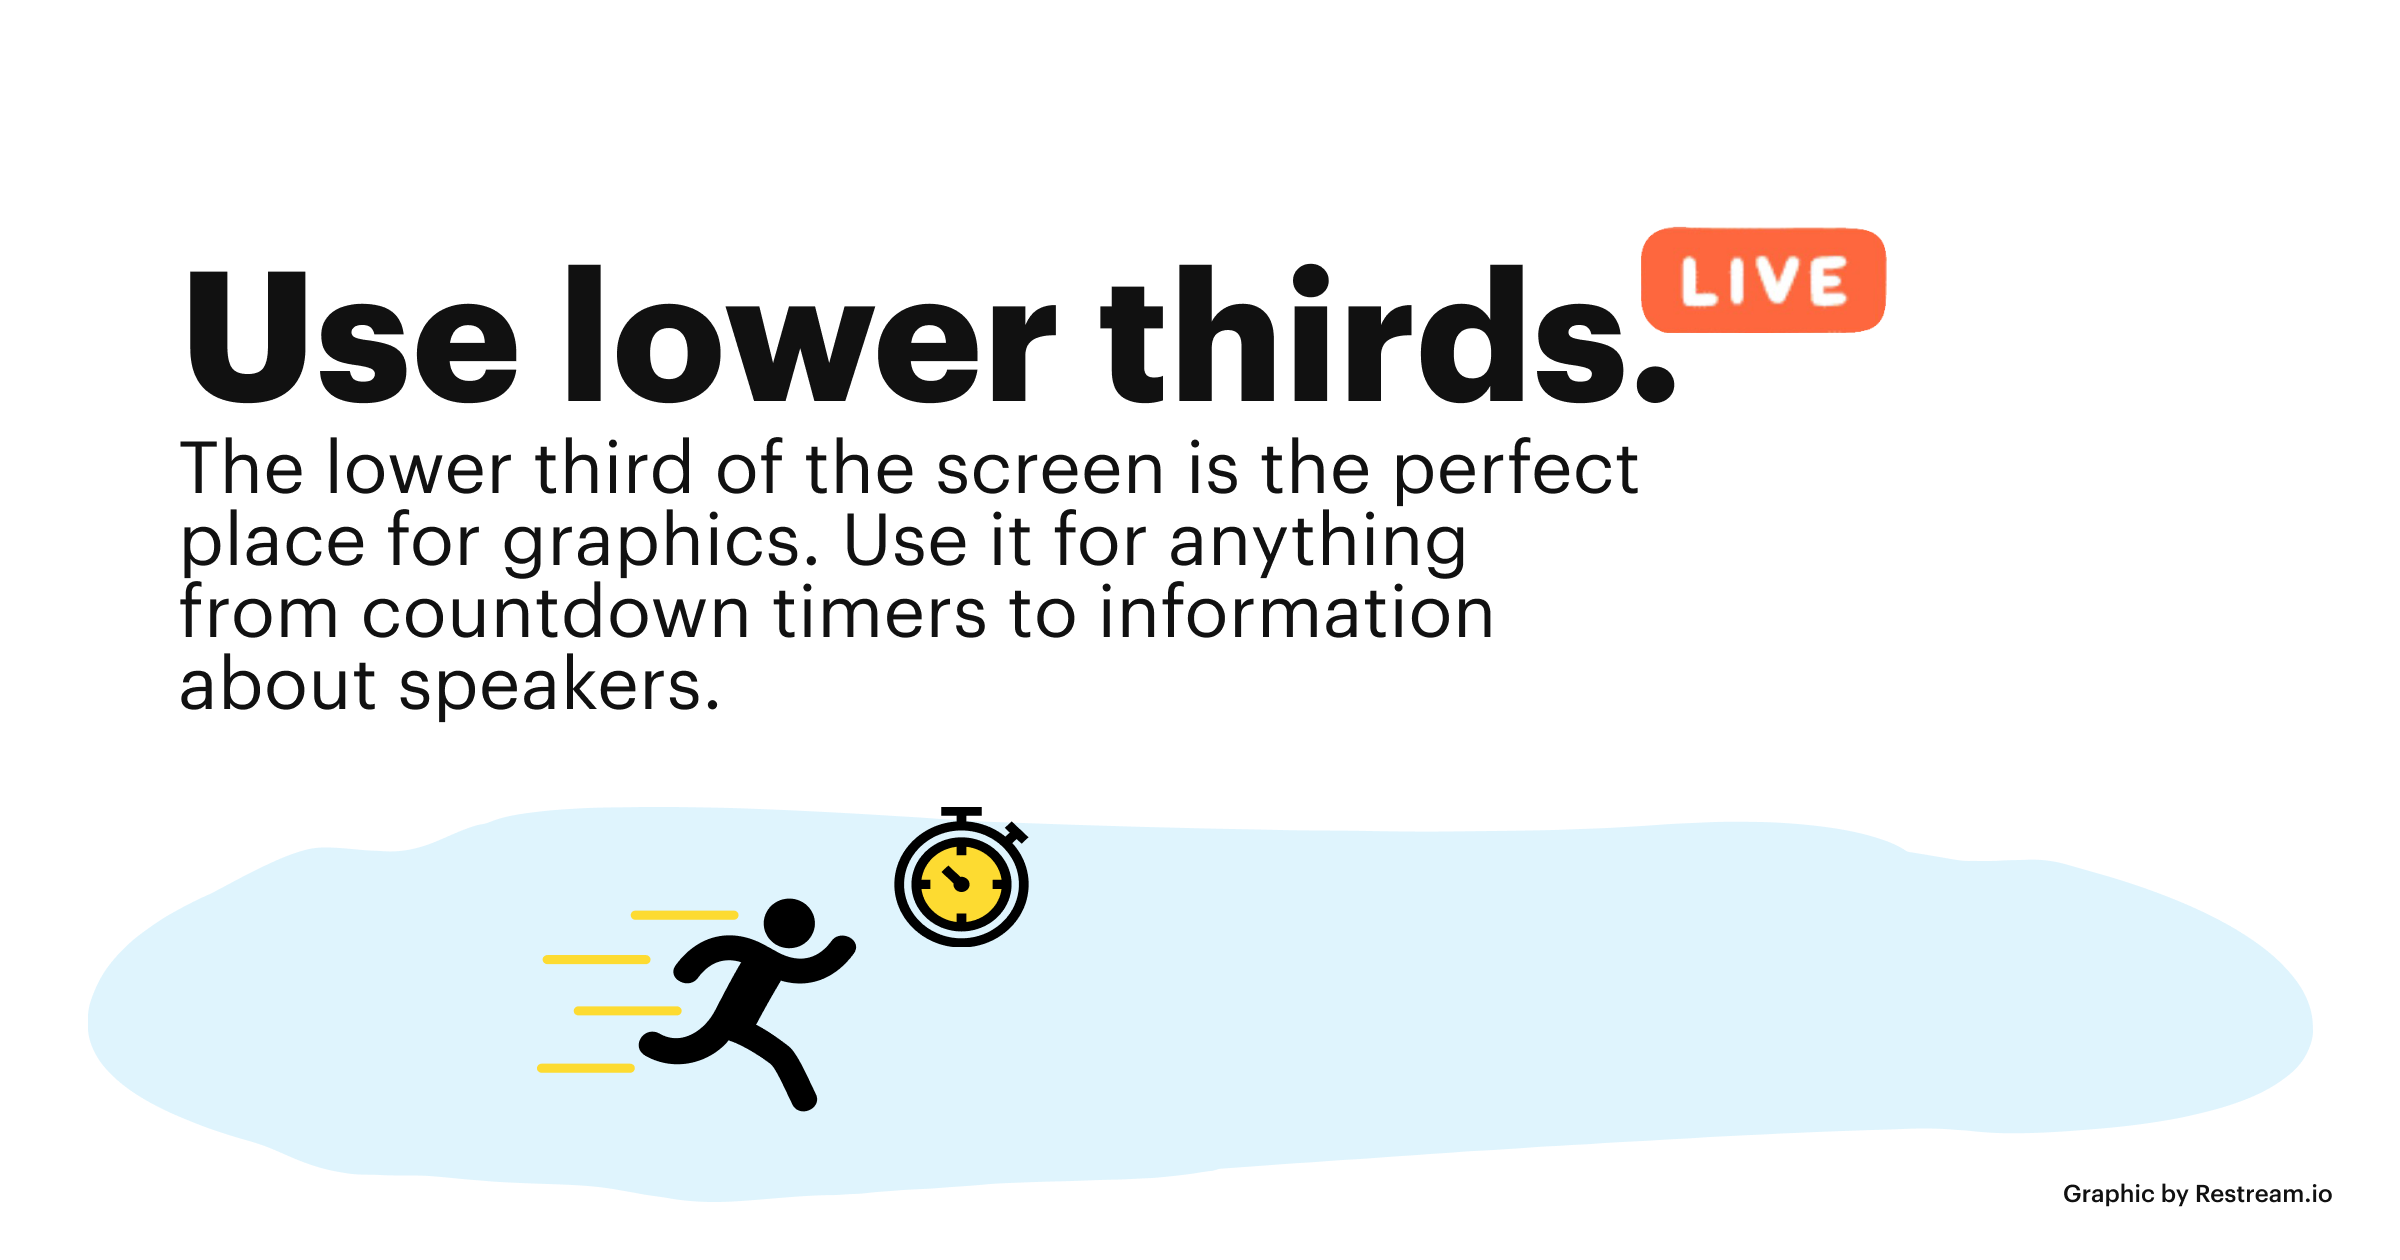 How to live stream an event tip: Use lower thirds. The lower third of the screen is the perfect place for graphics.